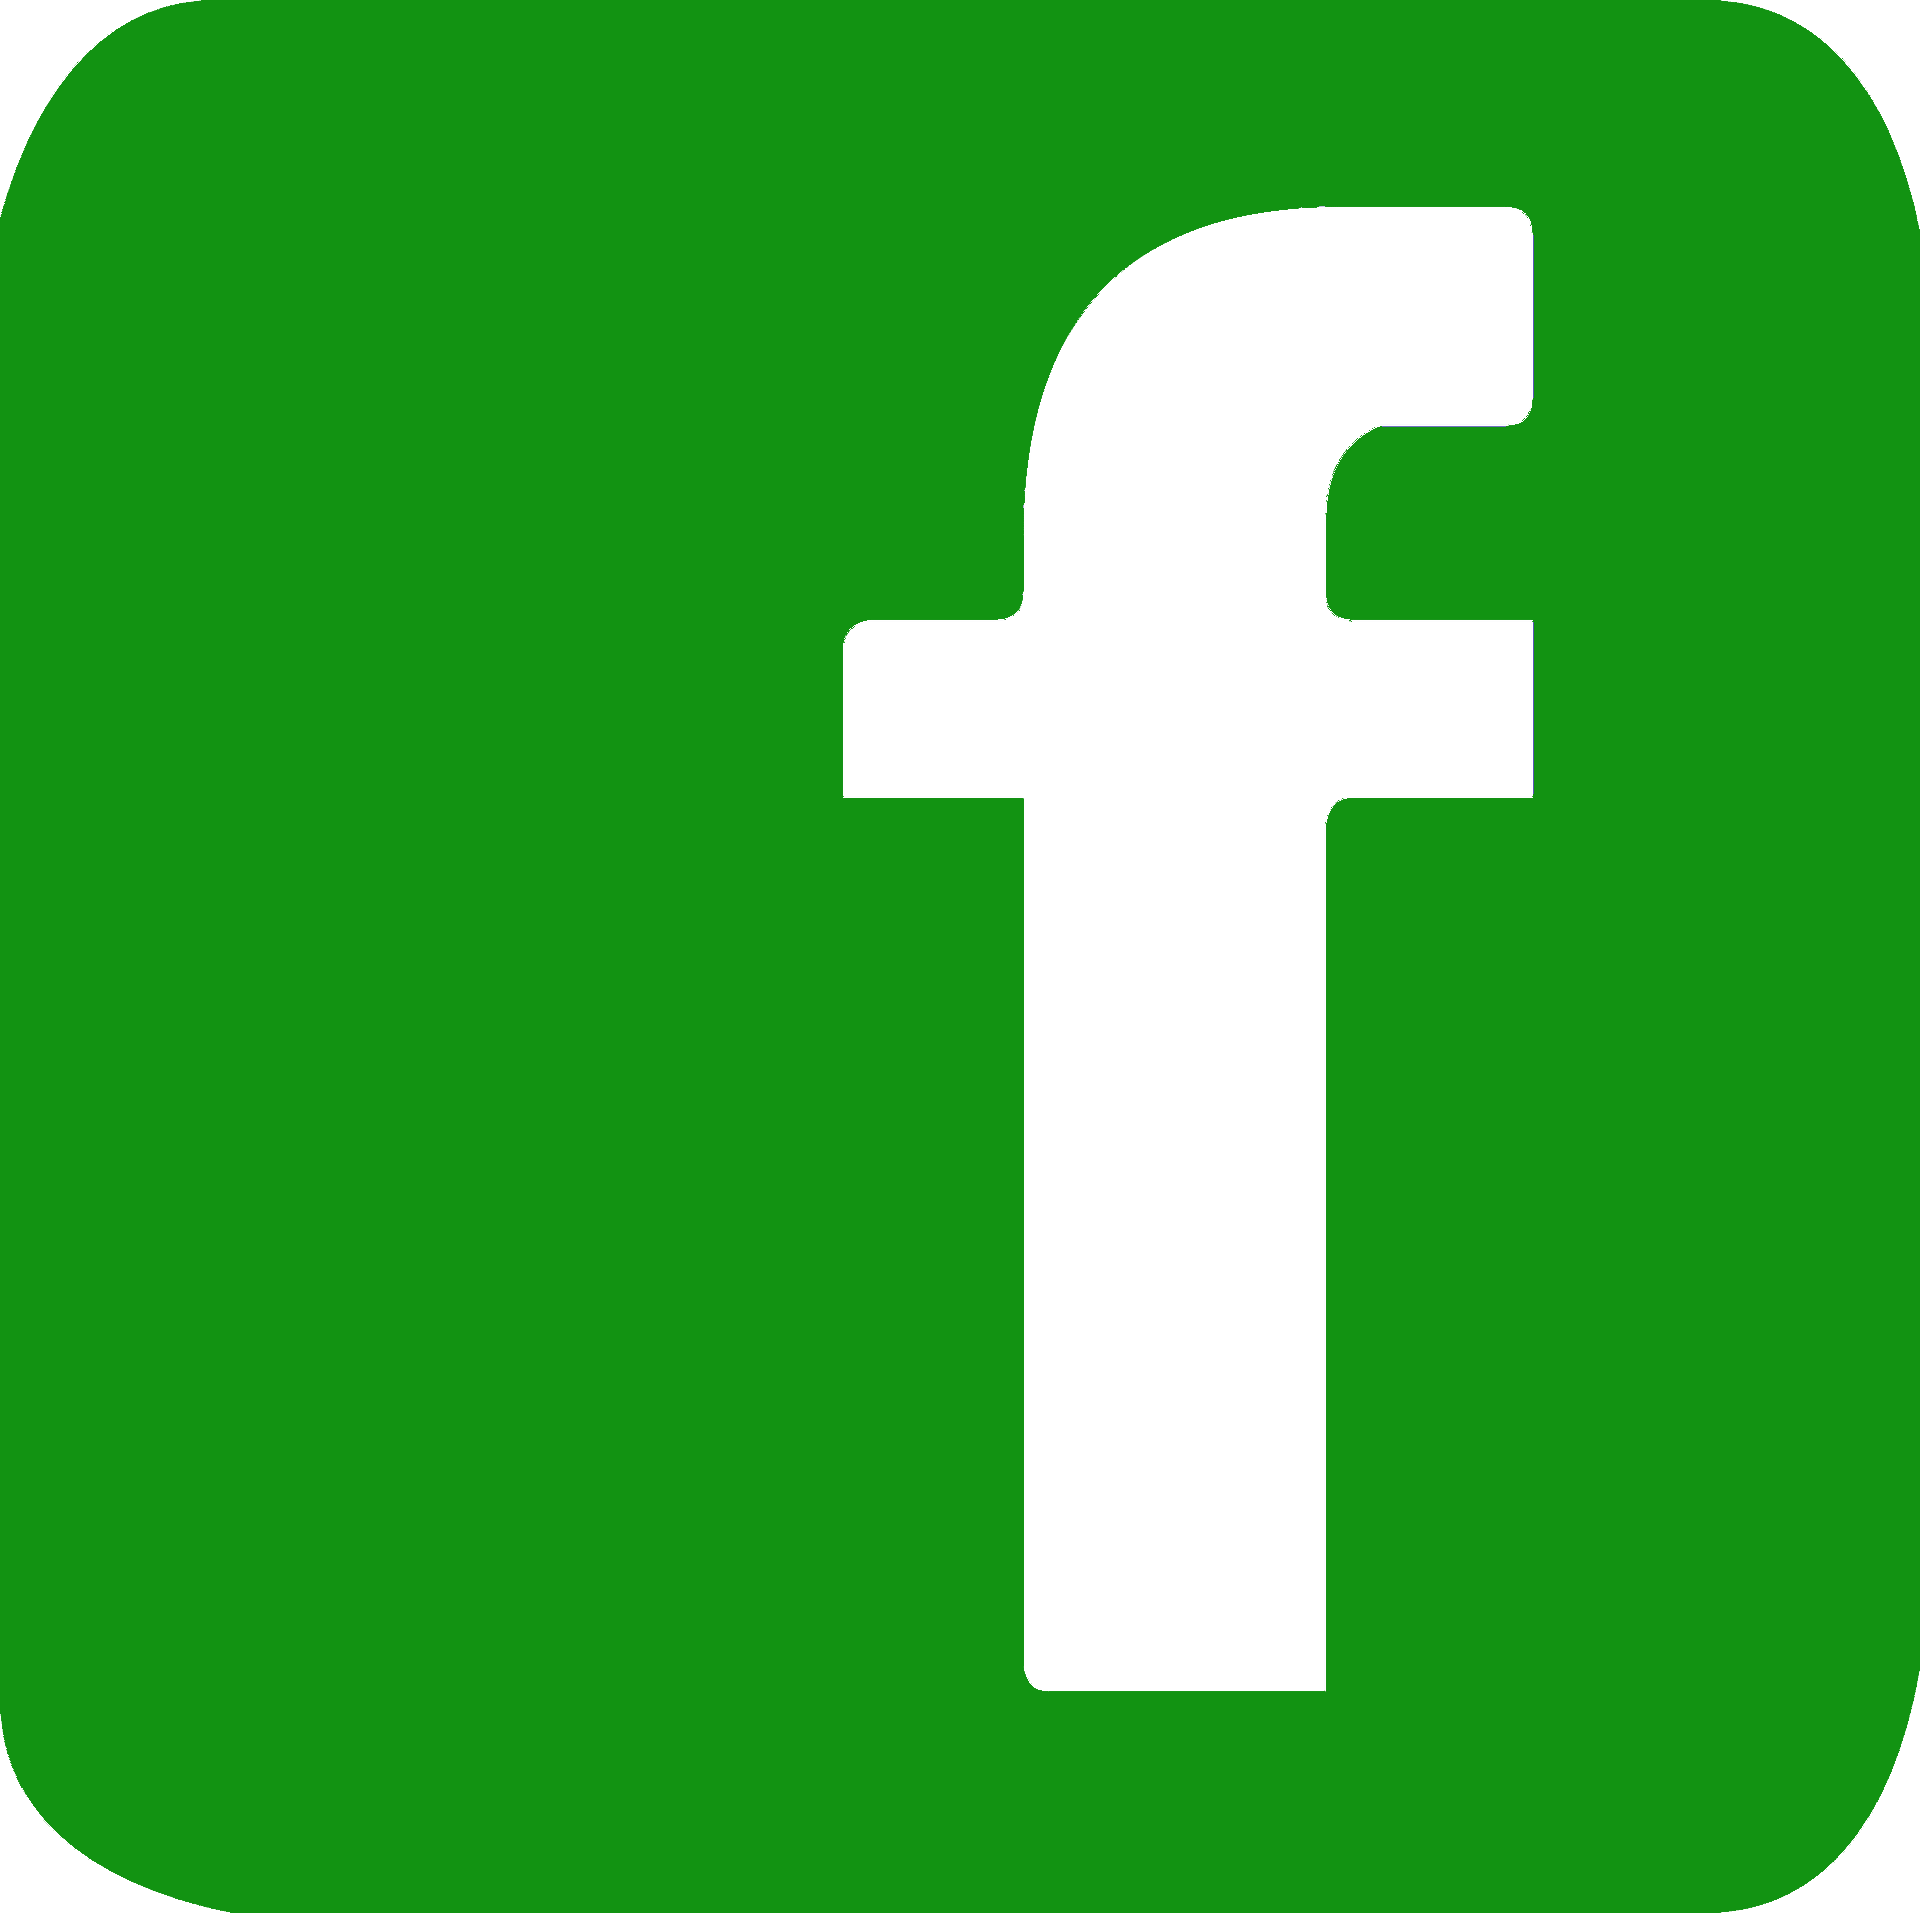 fb logo green